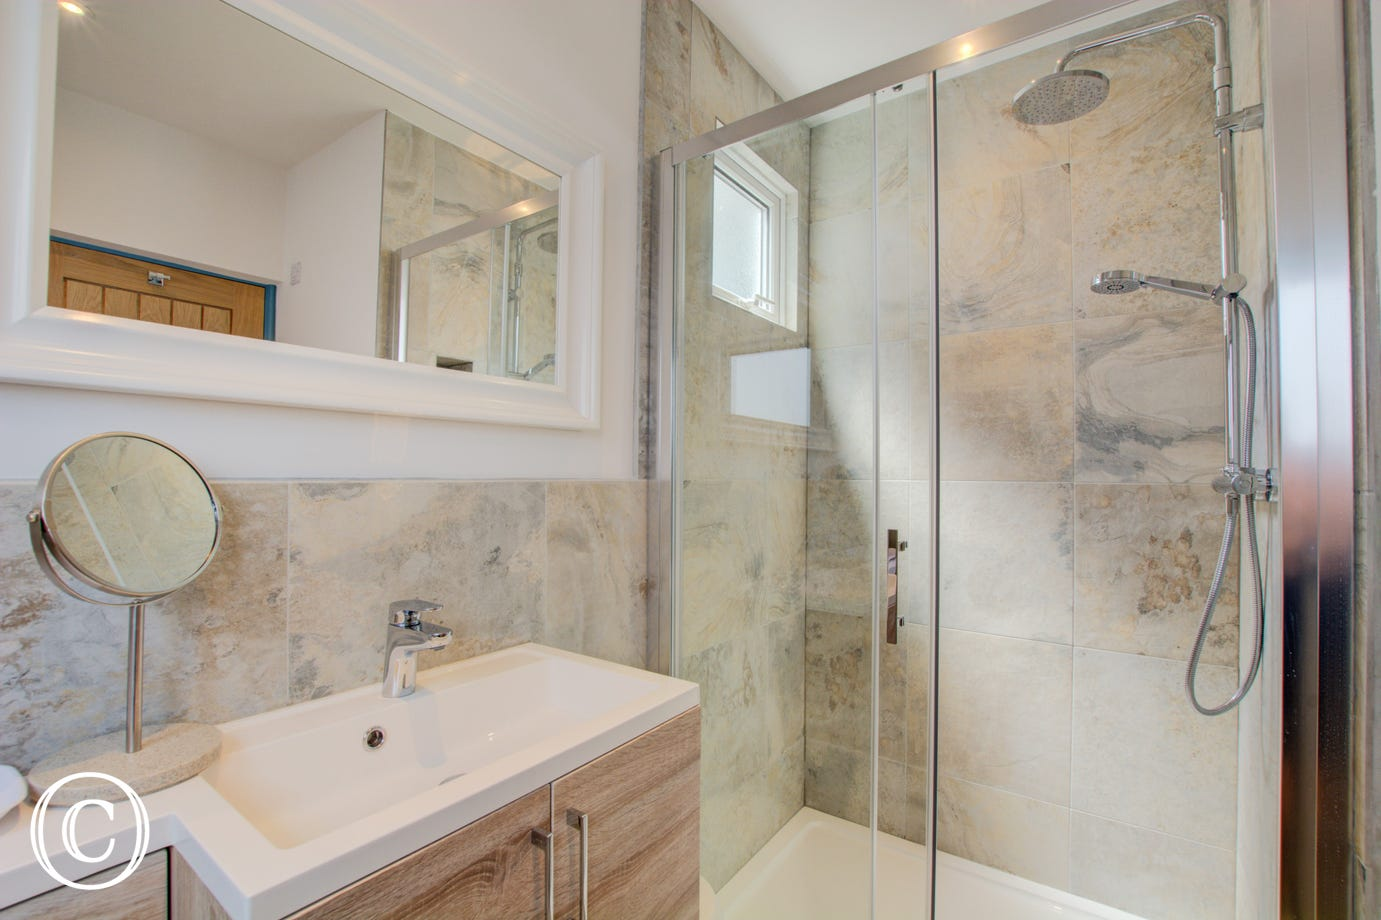 Ground floor shower room/utility